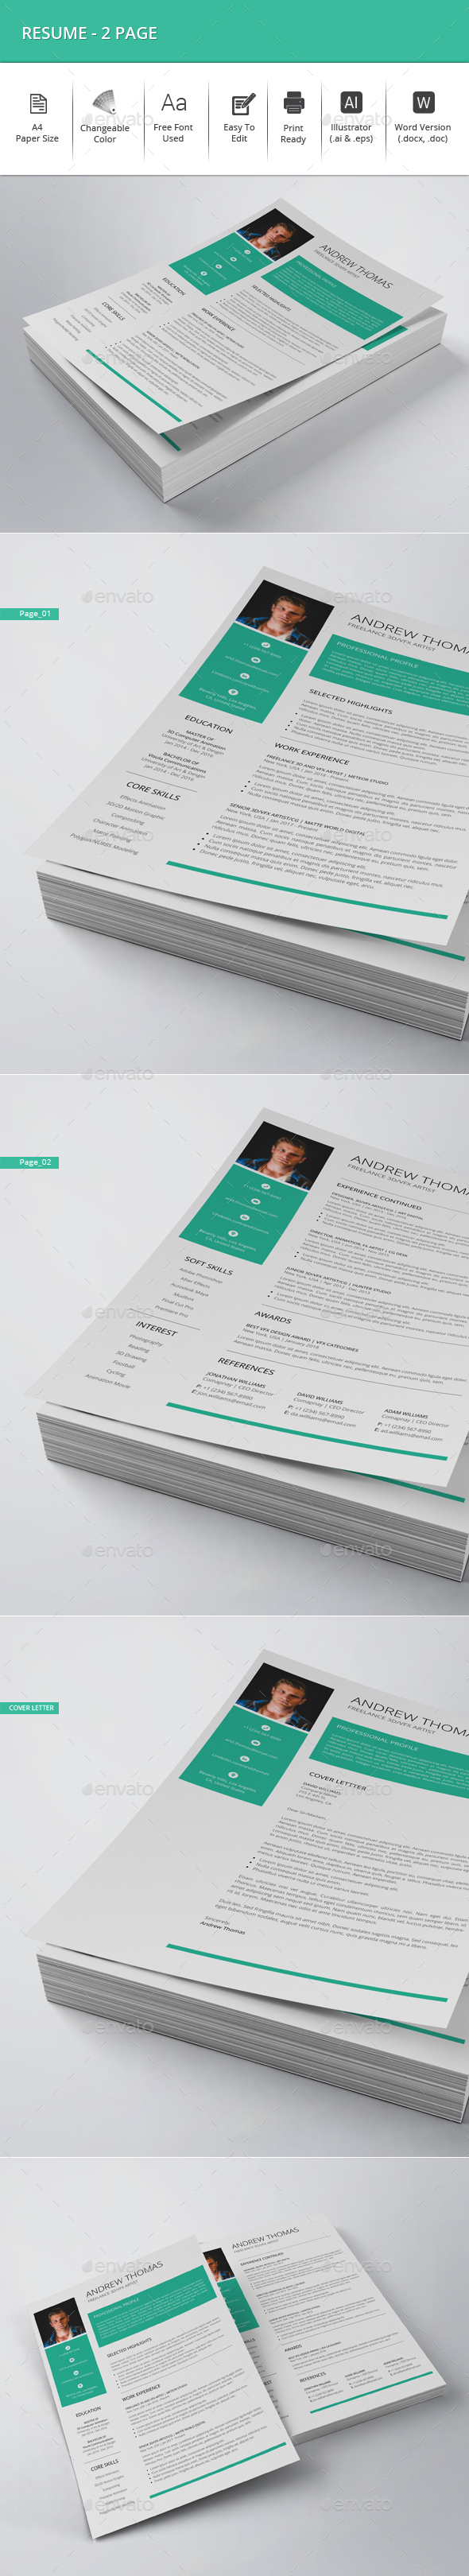 Resume - 2 Page - Resumes Stationery